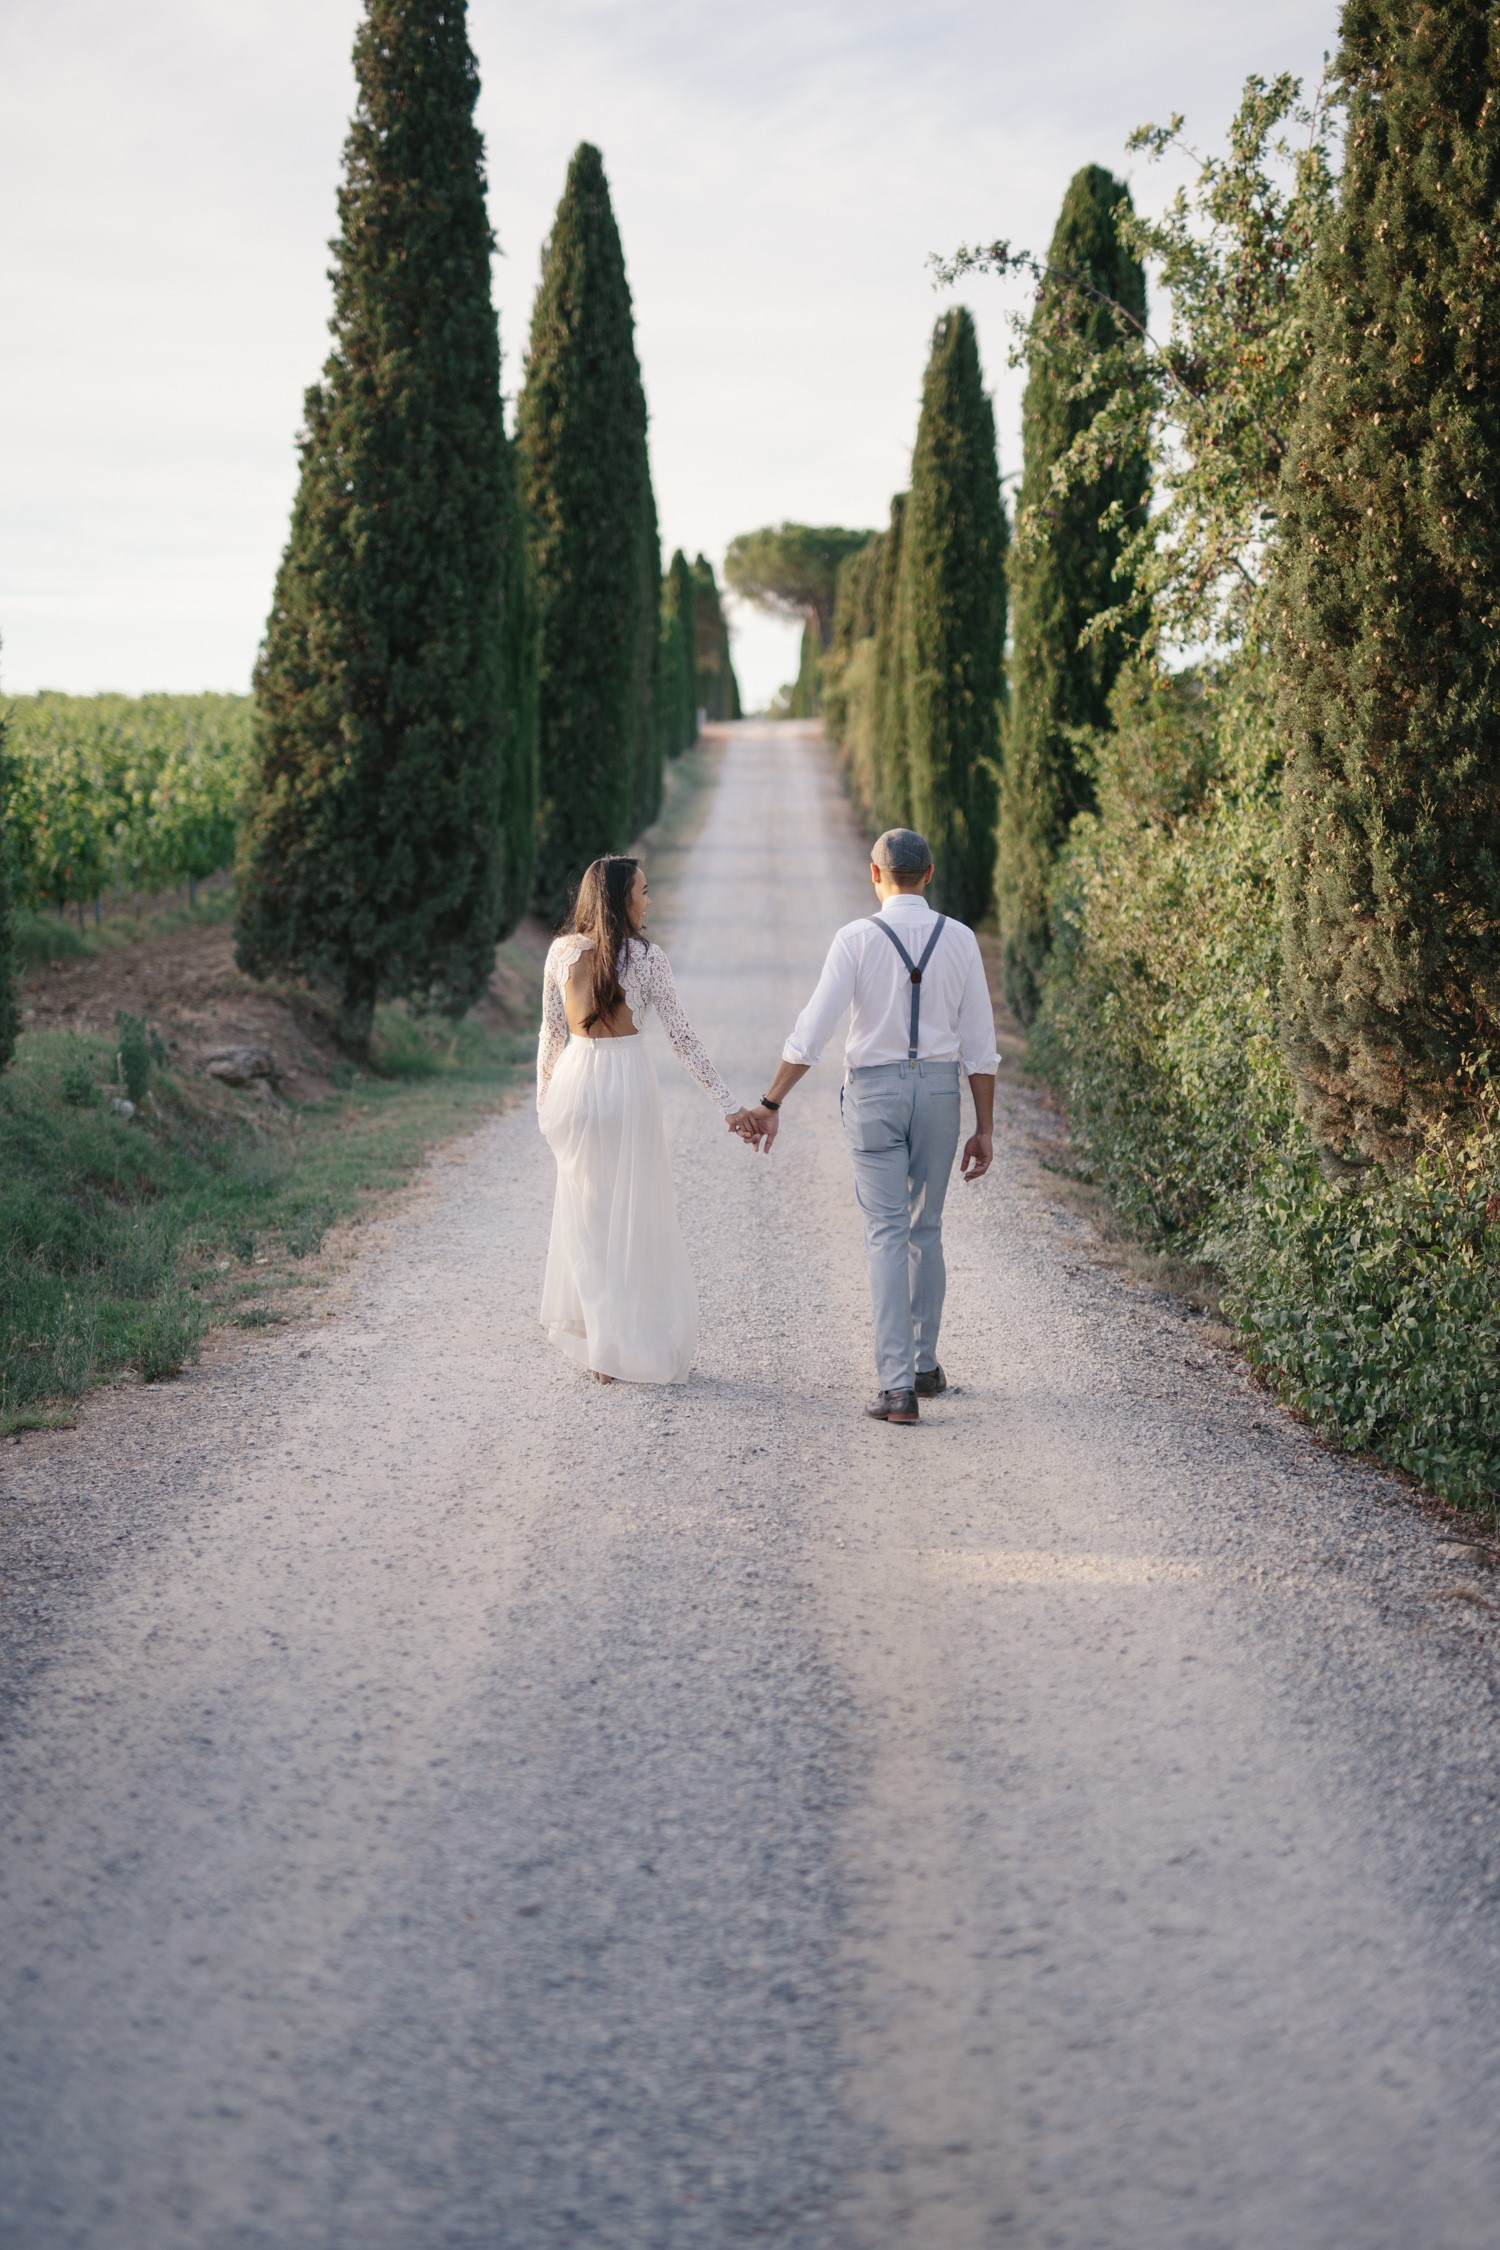 Wedding in Tuscany - Reportage by Igor Albanese